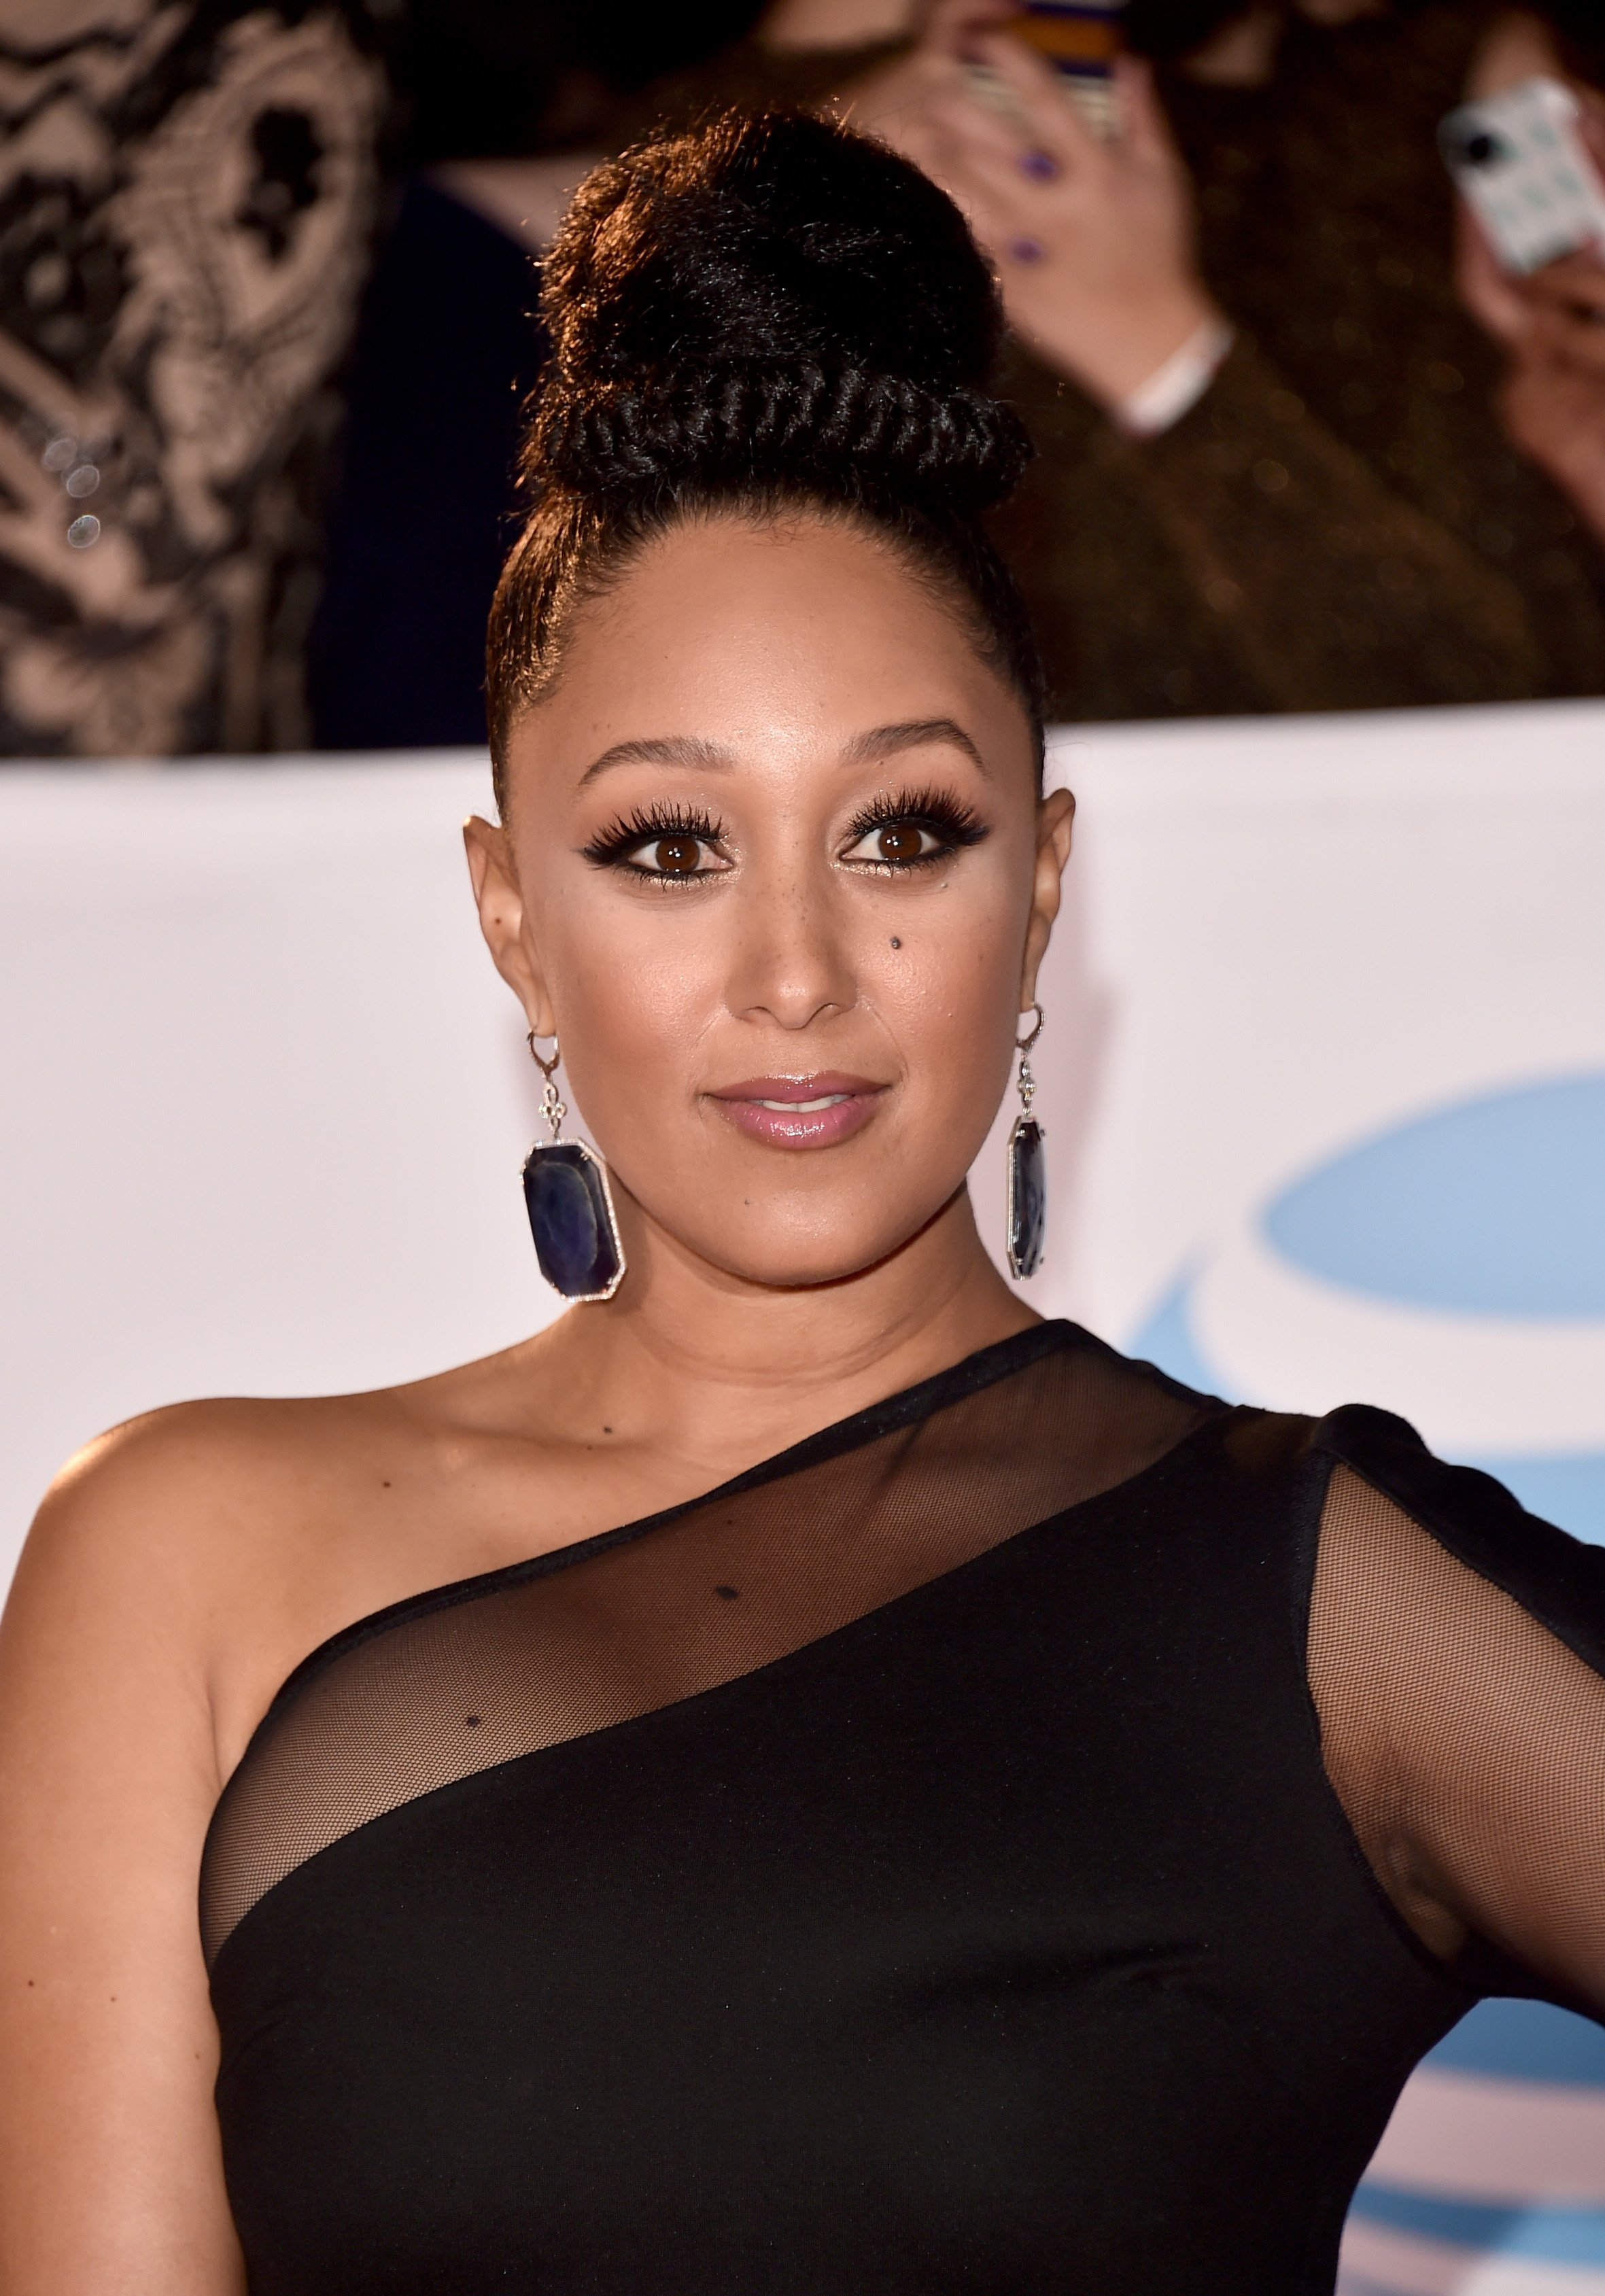 Tamera Mowry at the 49th NAACP Image Awards red carpet in January 2018. | Photo: Getty Images